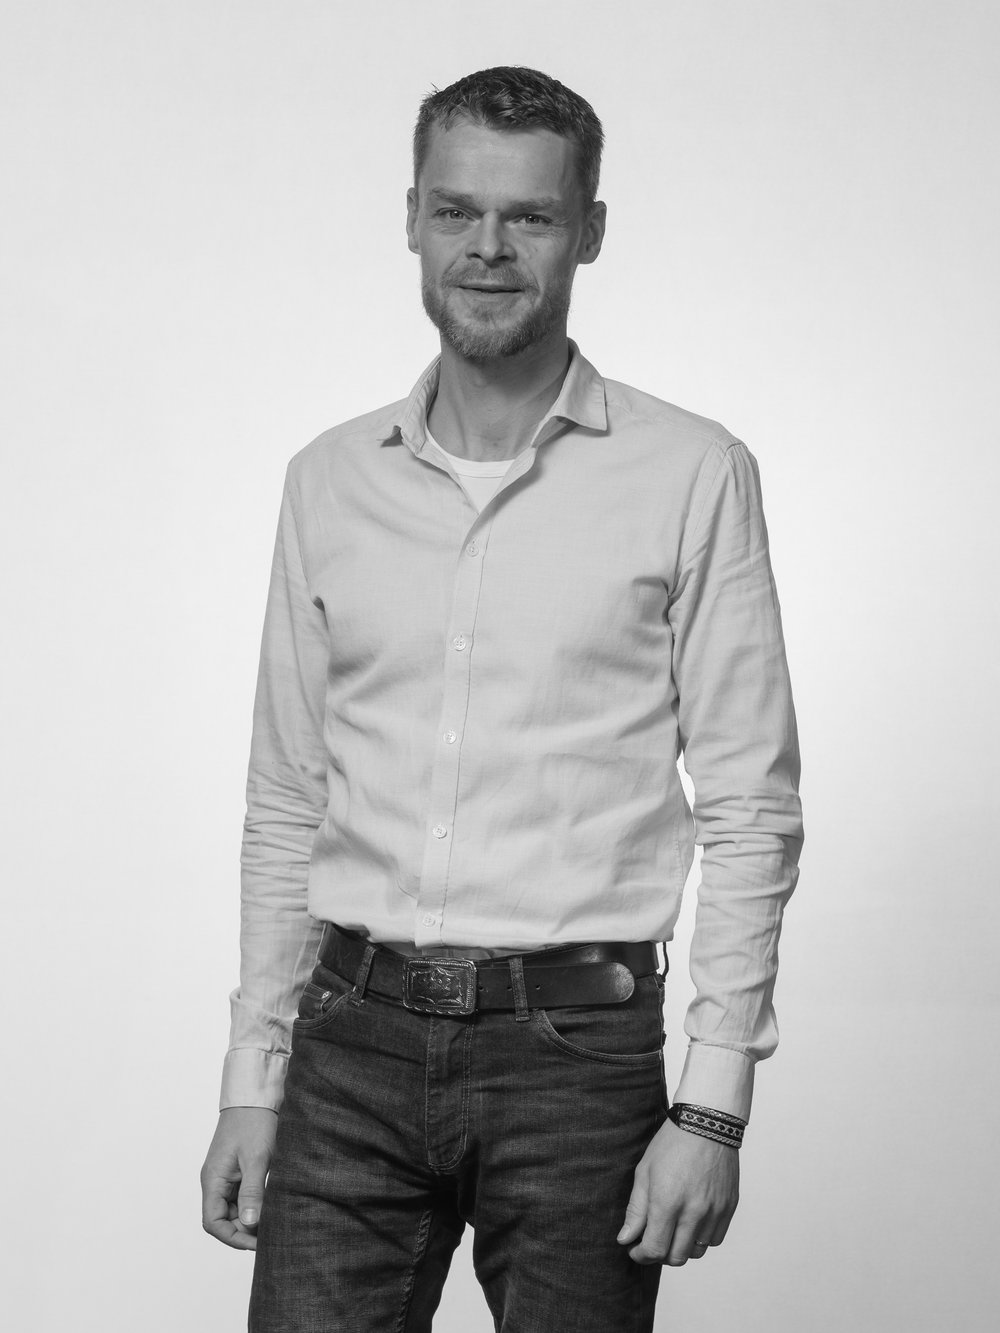 Anders Danielsson - Sales and projekt manager+46 76 115 20 95anders.danielsson@ecpairtech.se